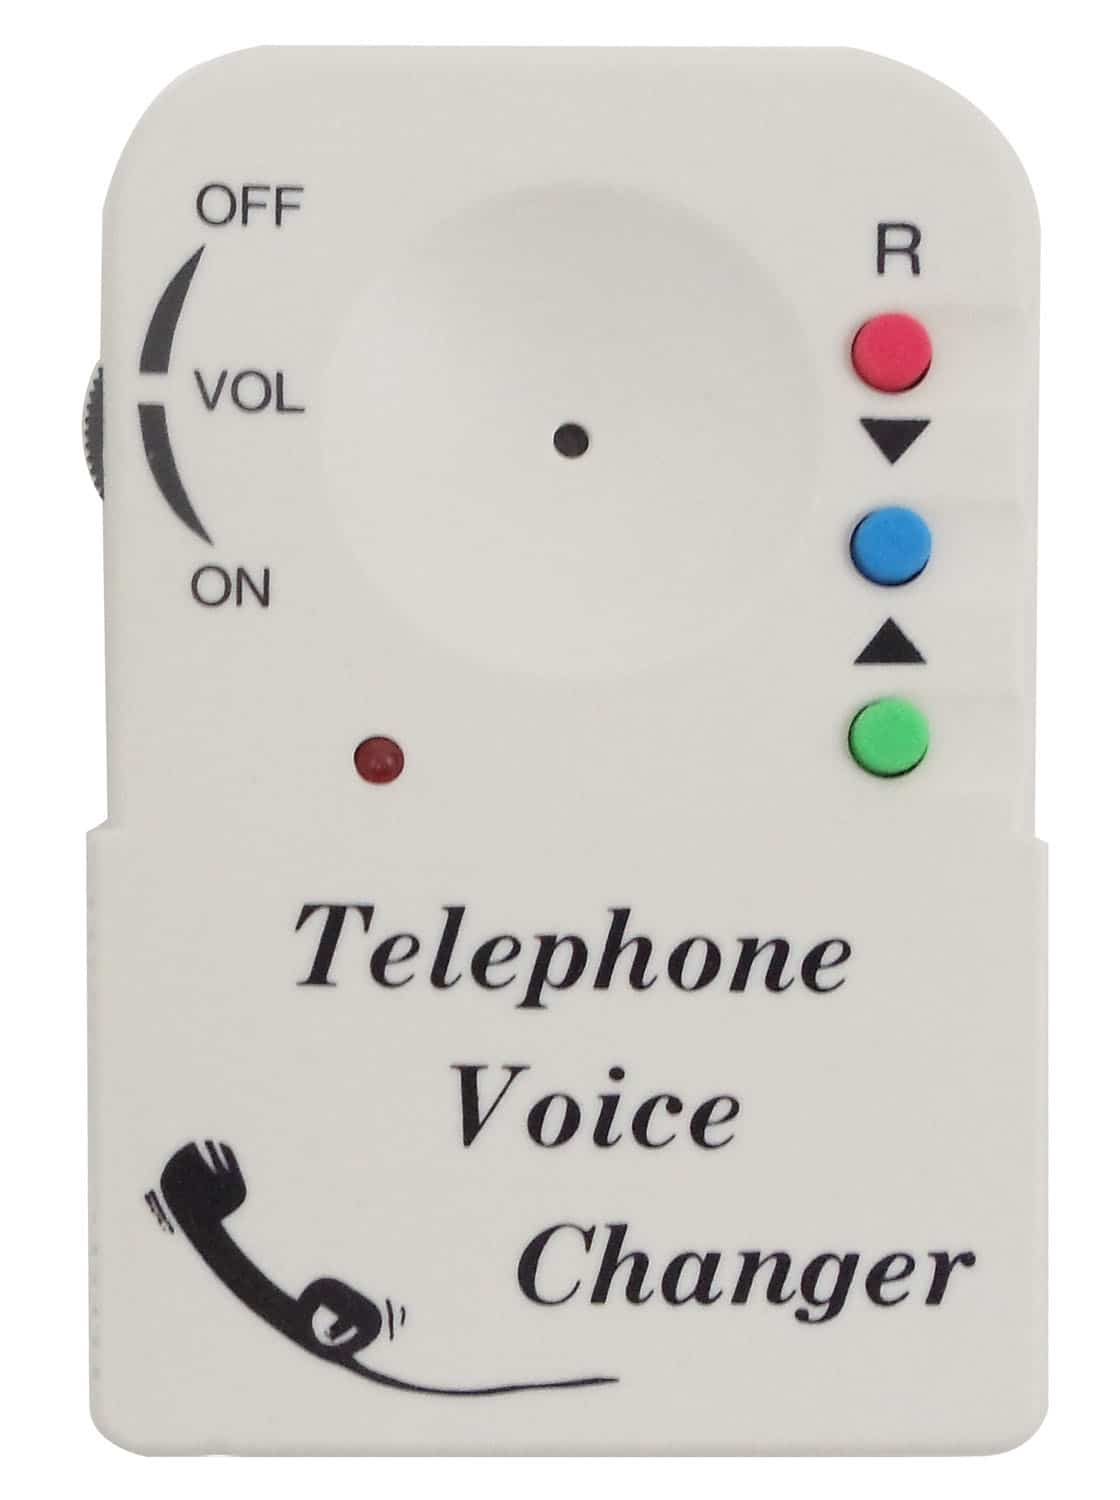 LG206 - RF Limited Telephone Voice Disguise